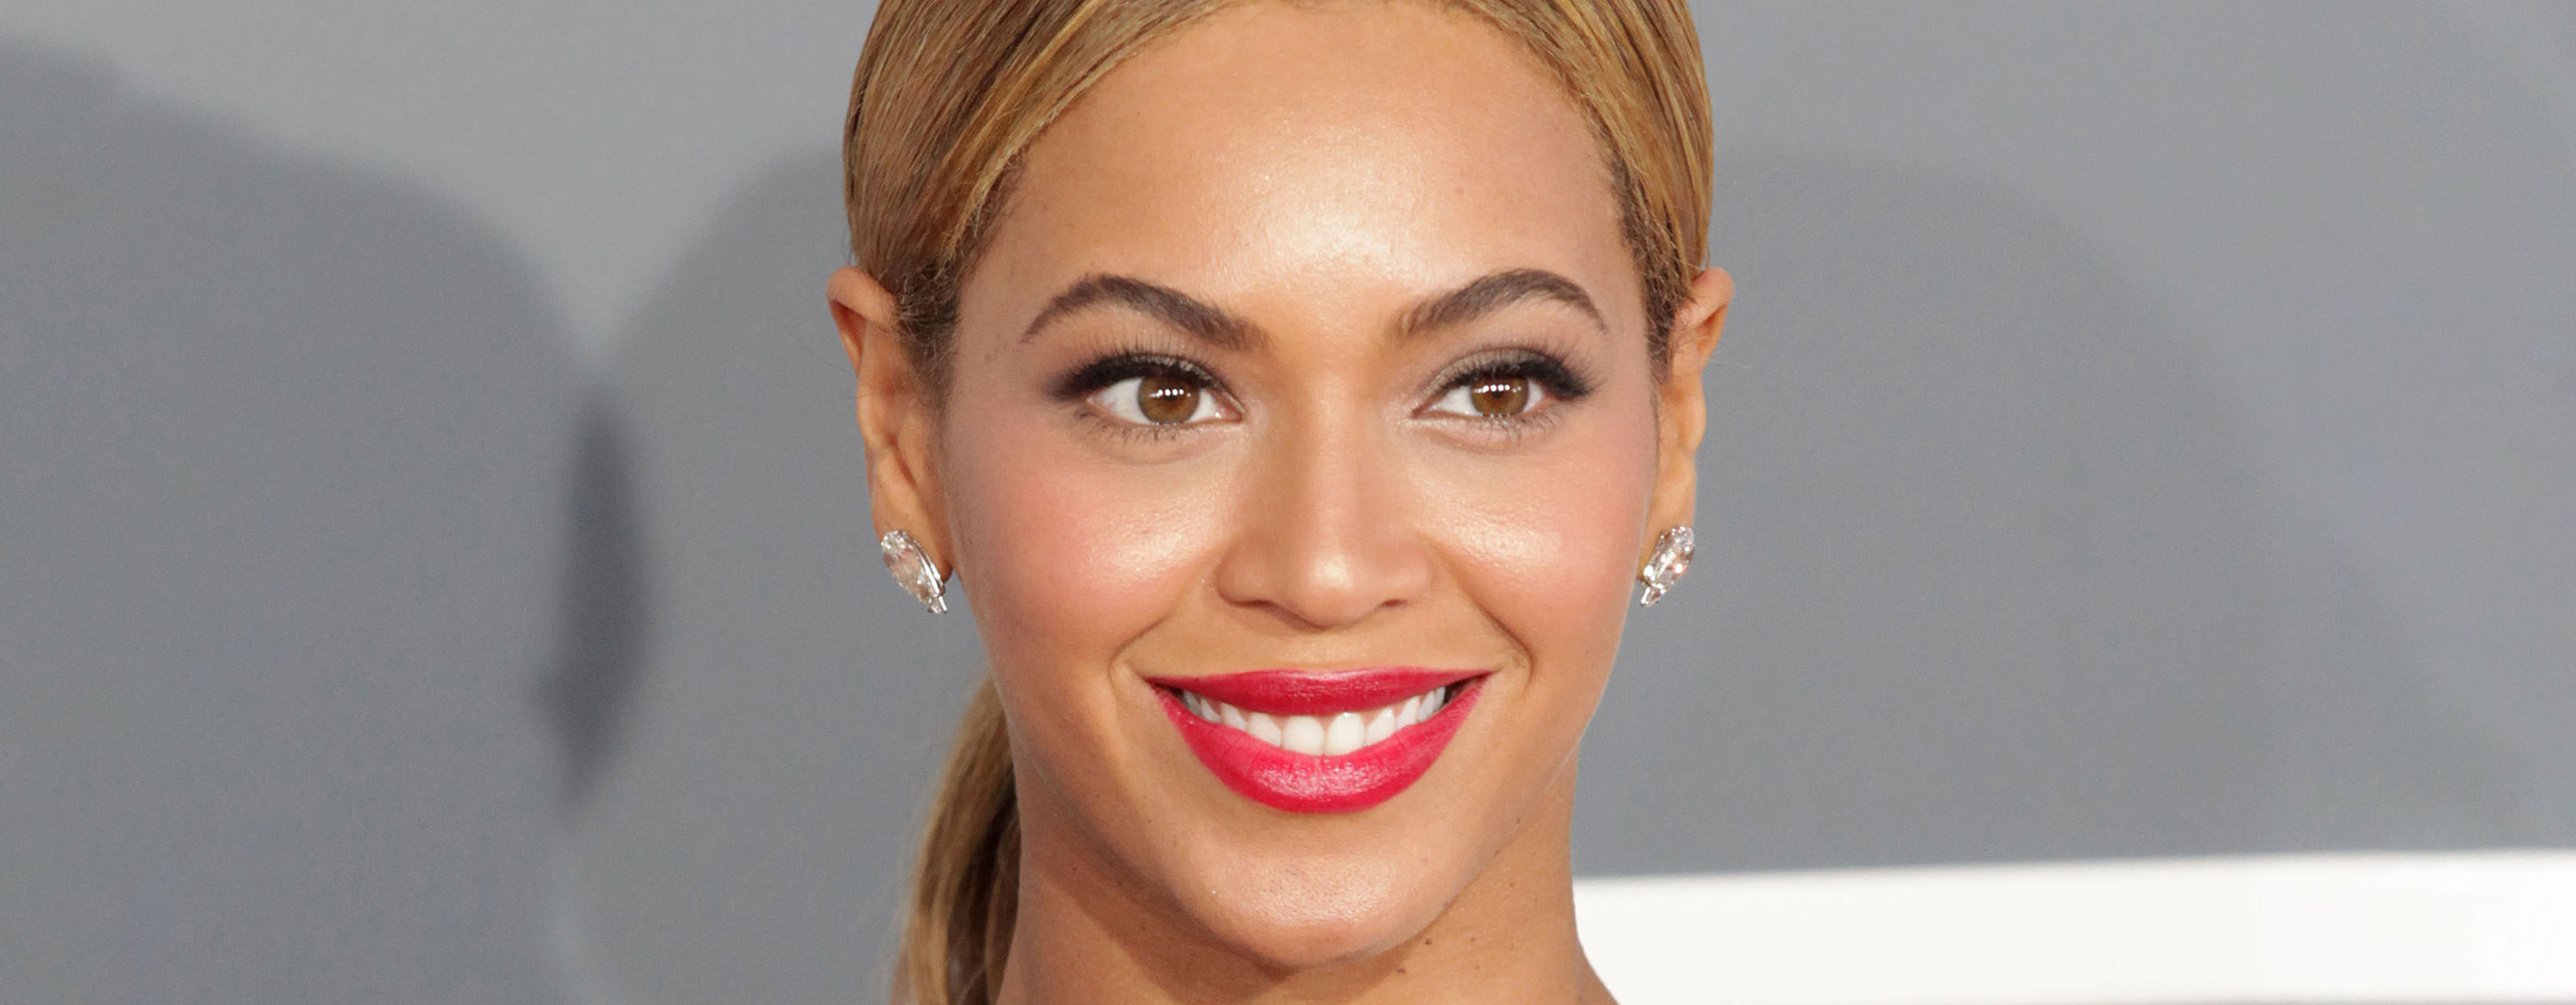 Beyonce Hot Red Lips Wallpapers - Beyonce Hot Red Lips Wallpapers